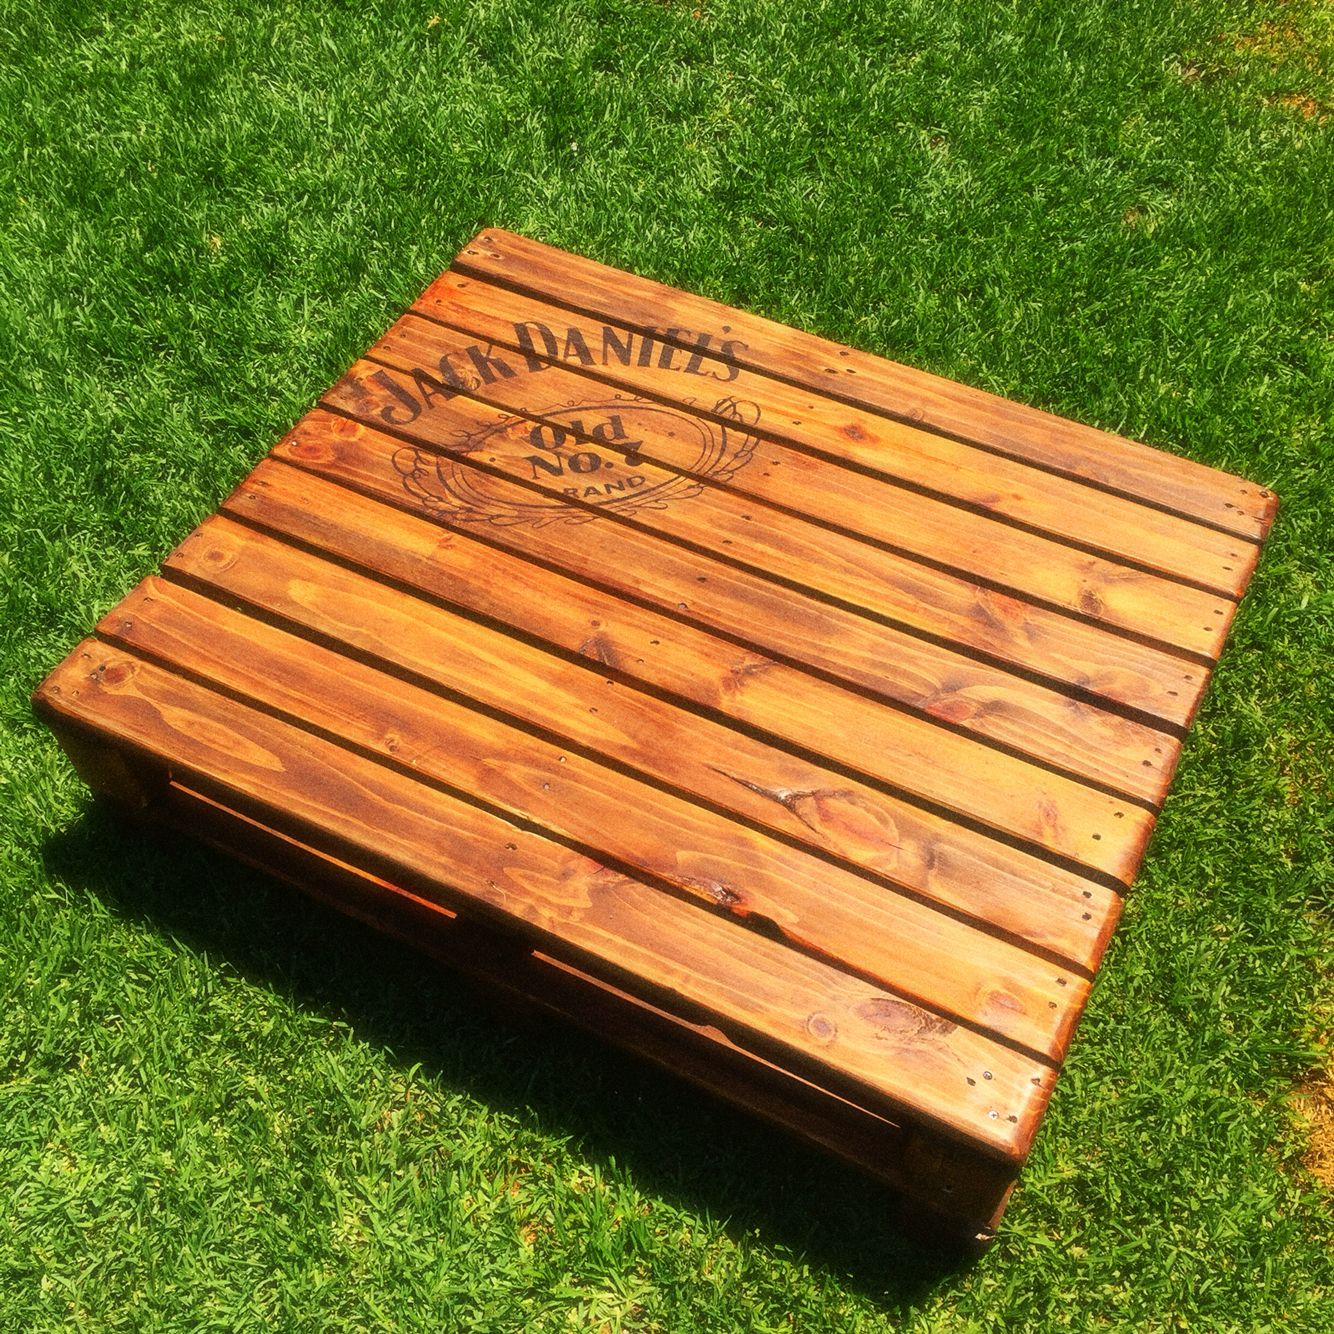 Jack daniels pallet coffee table home projects pinterest jack daniels pallet coffee table geotapseo Images